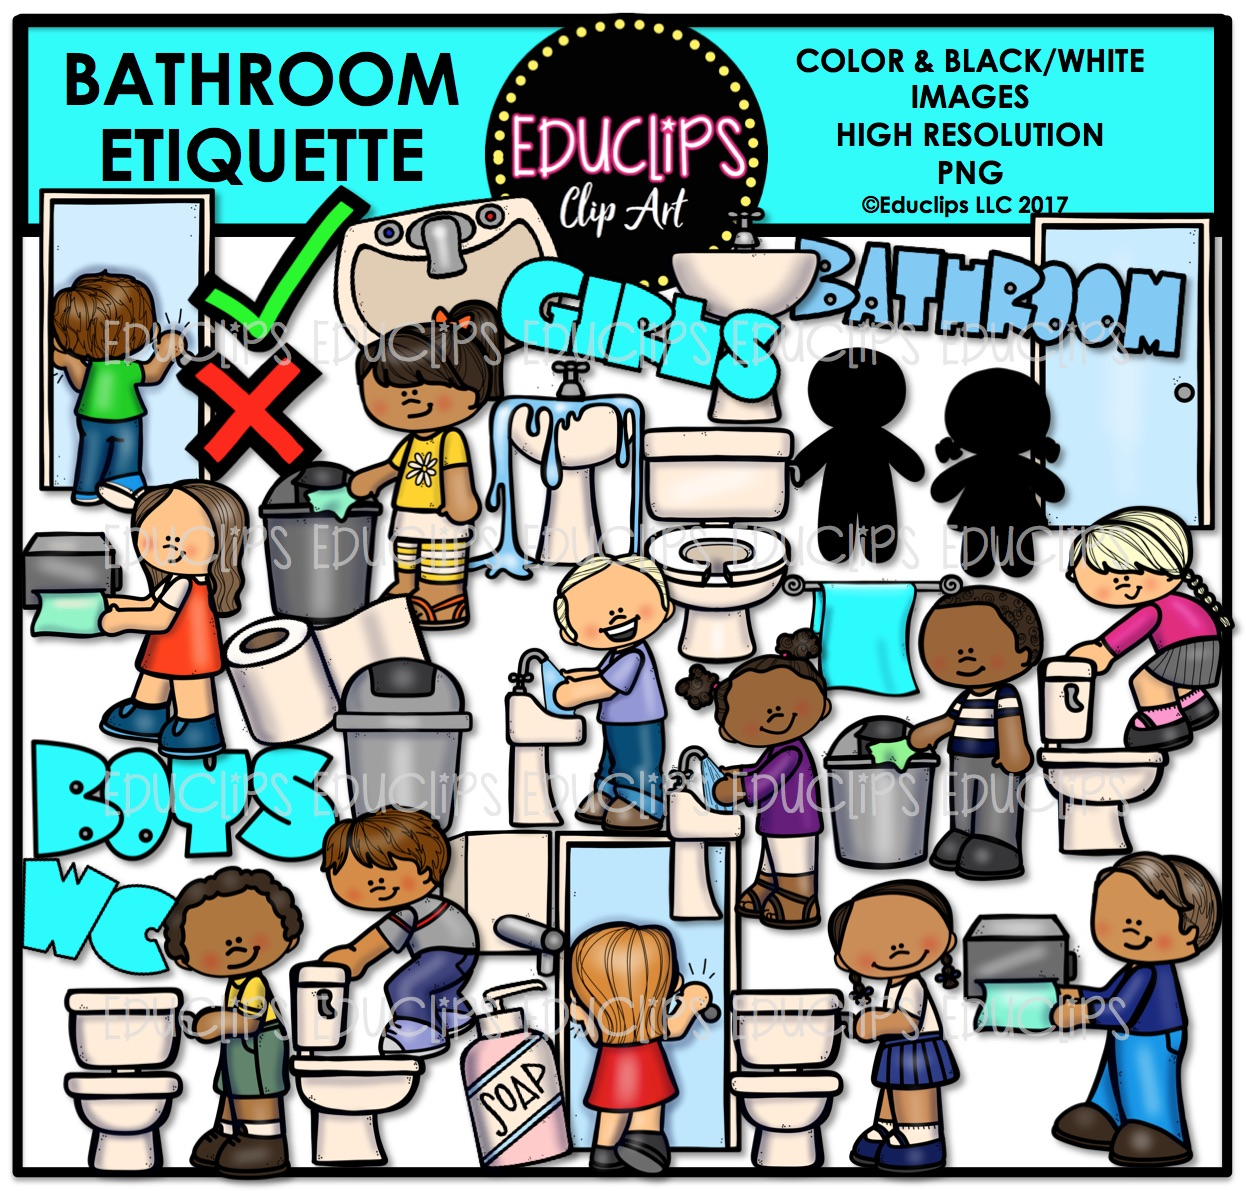 B&w clipart bathroom  Bathroom to (Color Clip